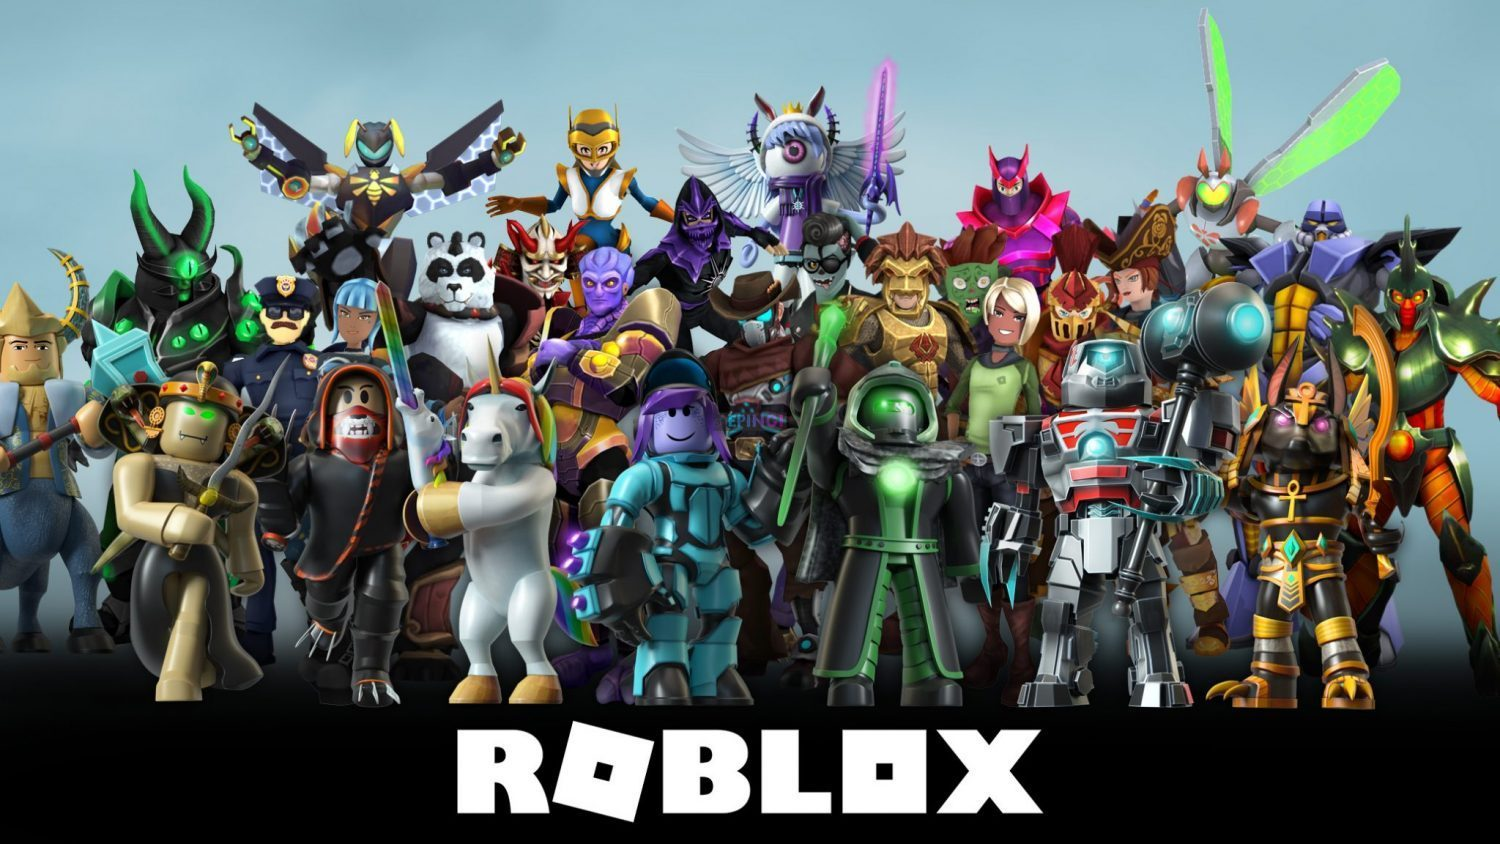 Roblox Robux Generator Without Verification